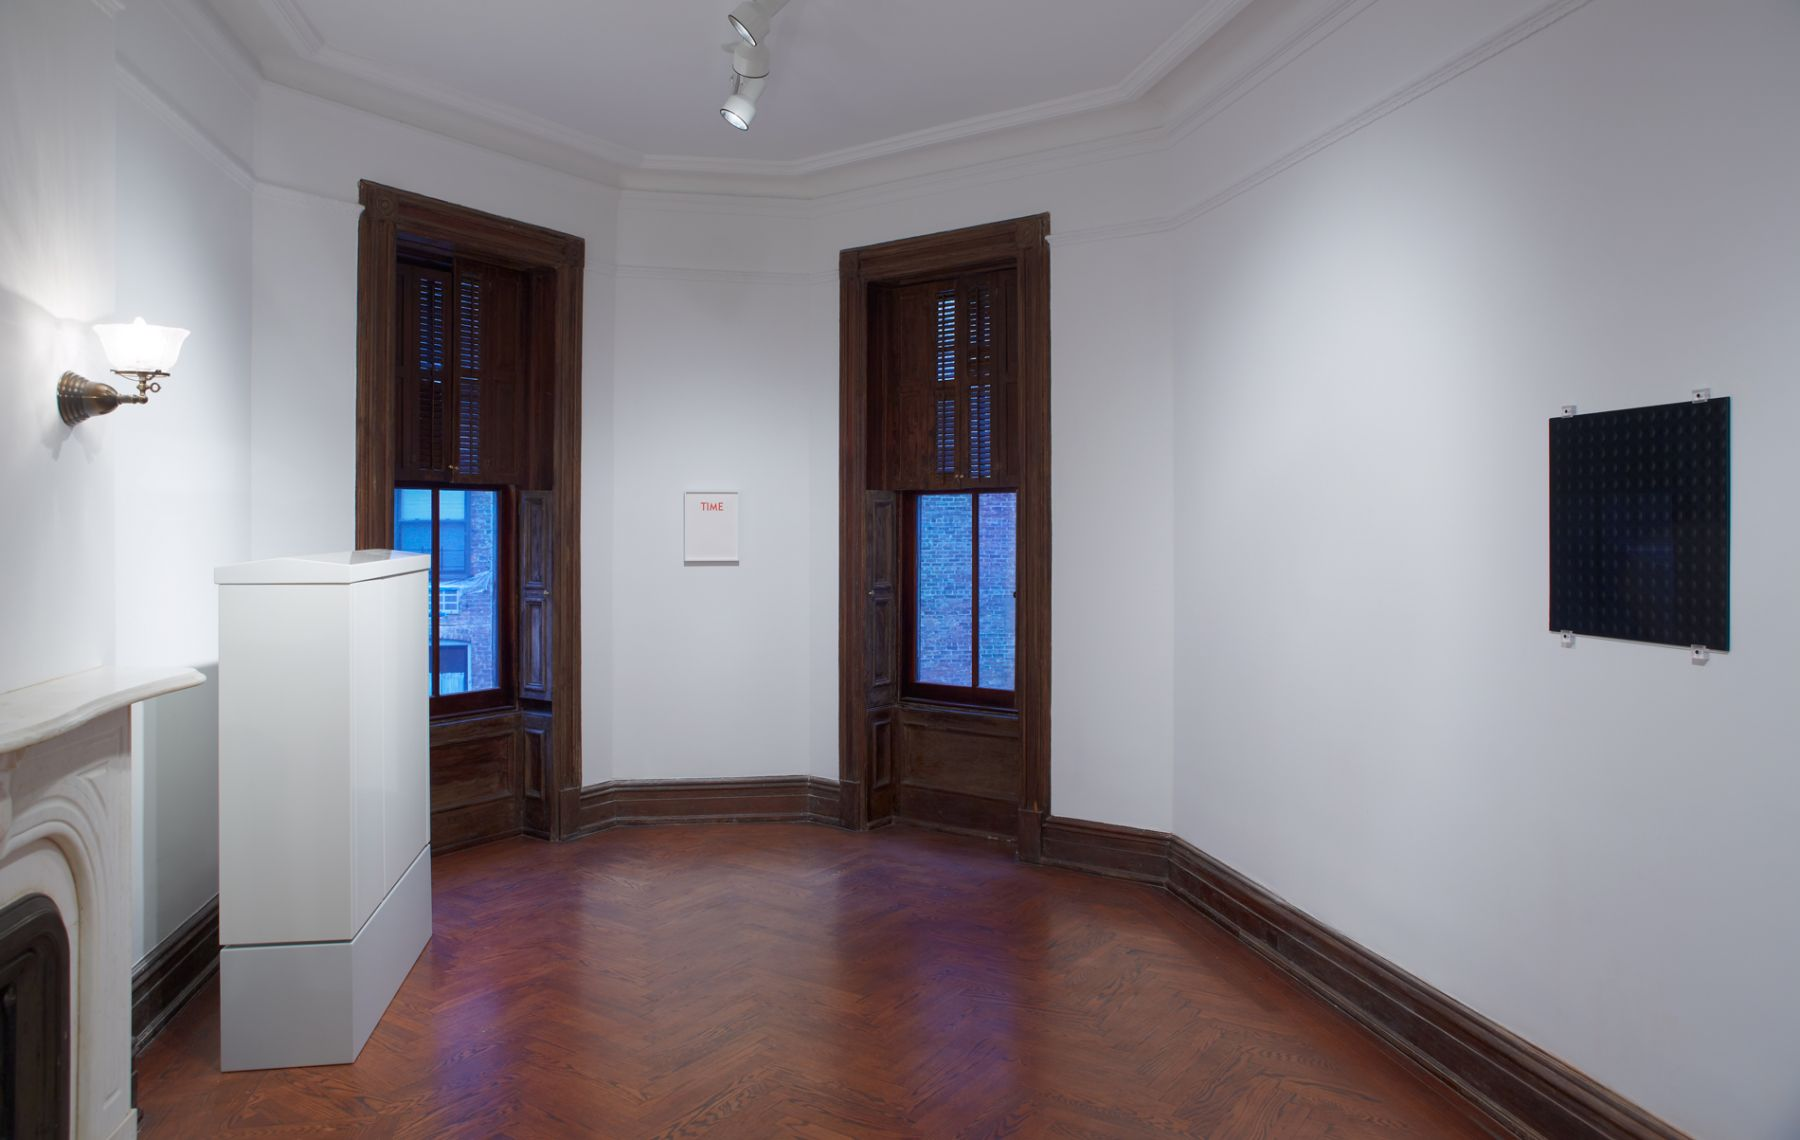 Specific Collisions(Installation View), Marianne Boesky Gallery, Uptown, 2013